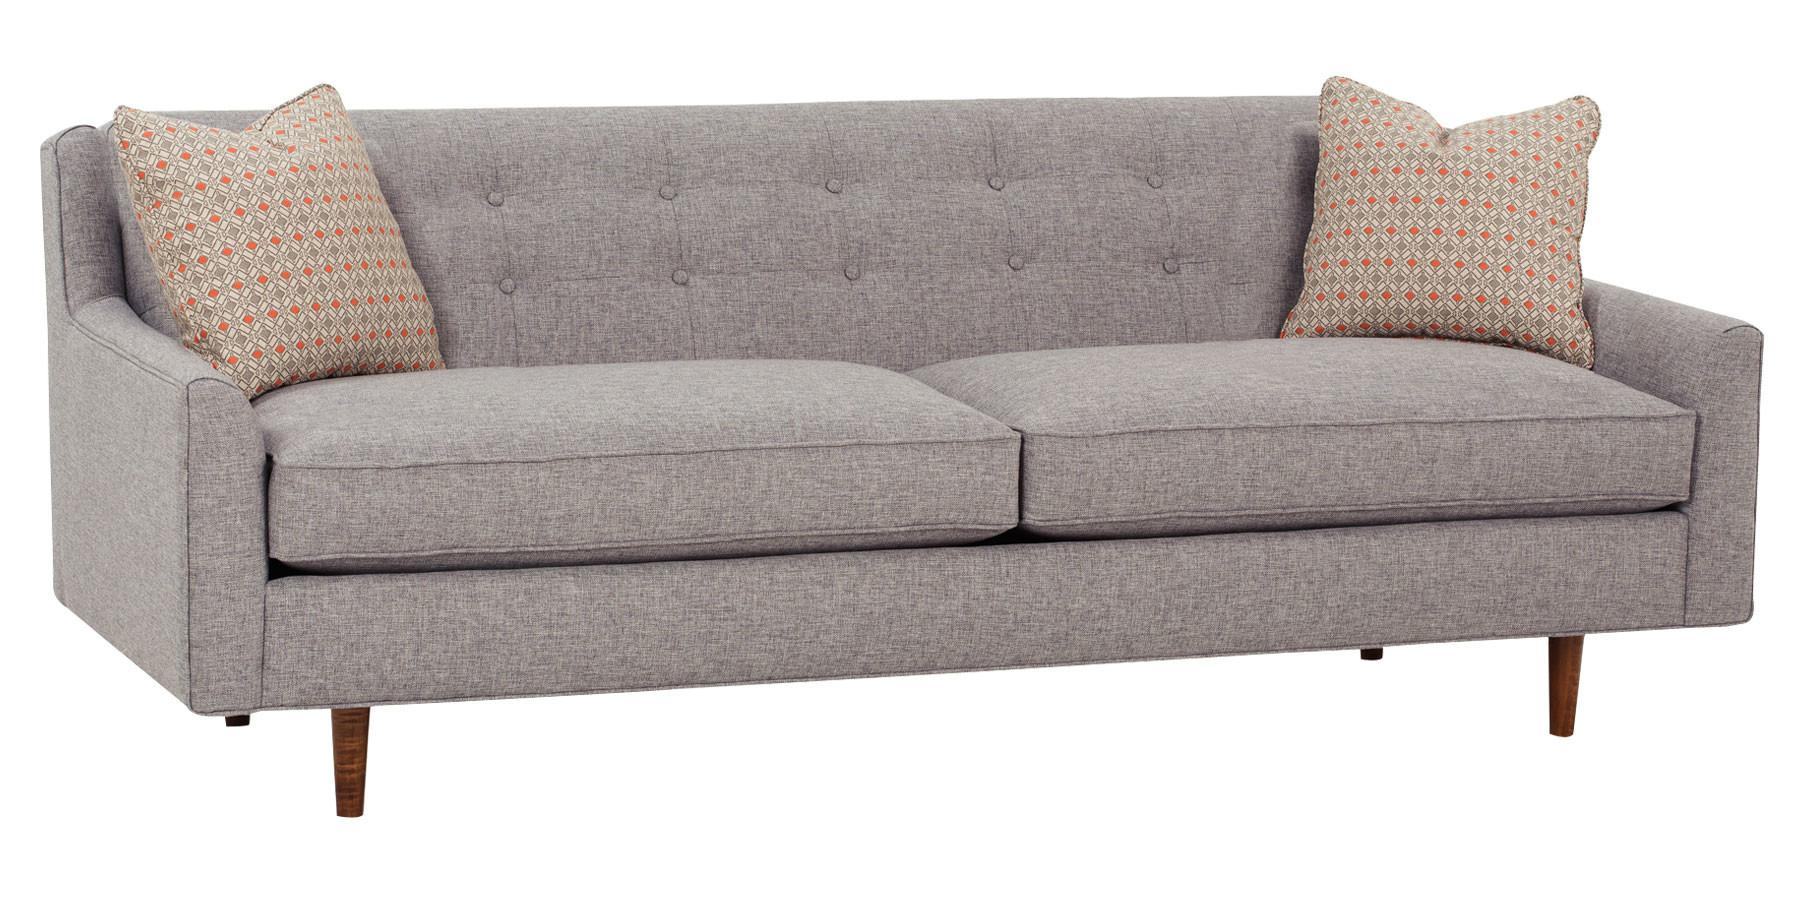 Danish Contemporary Sofas Furniture Modern Daybed